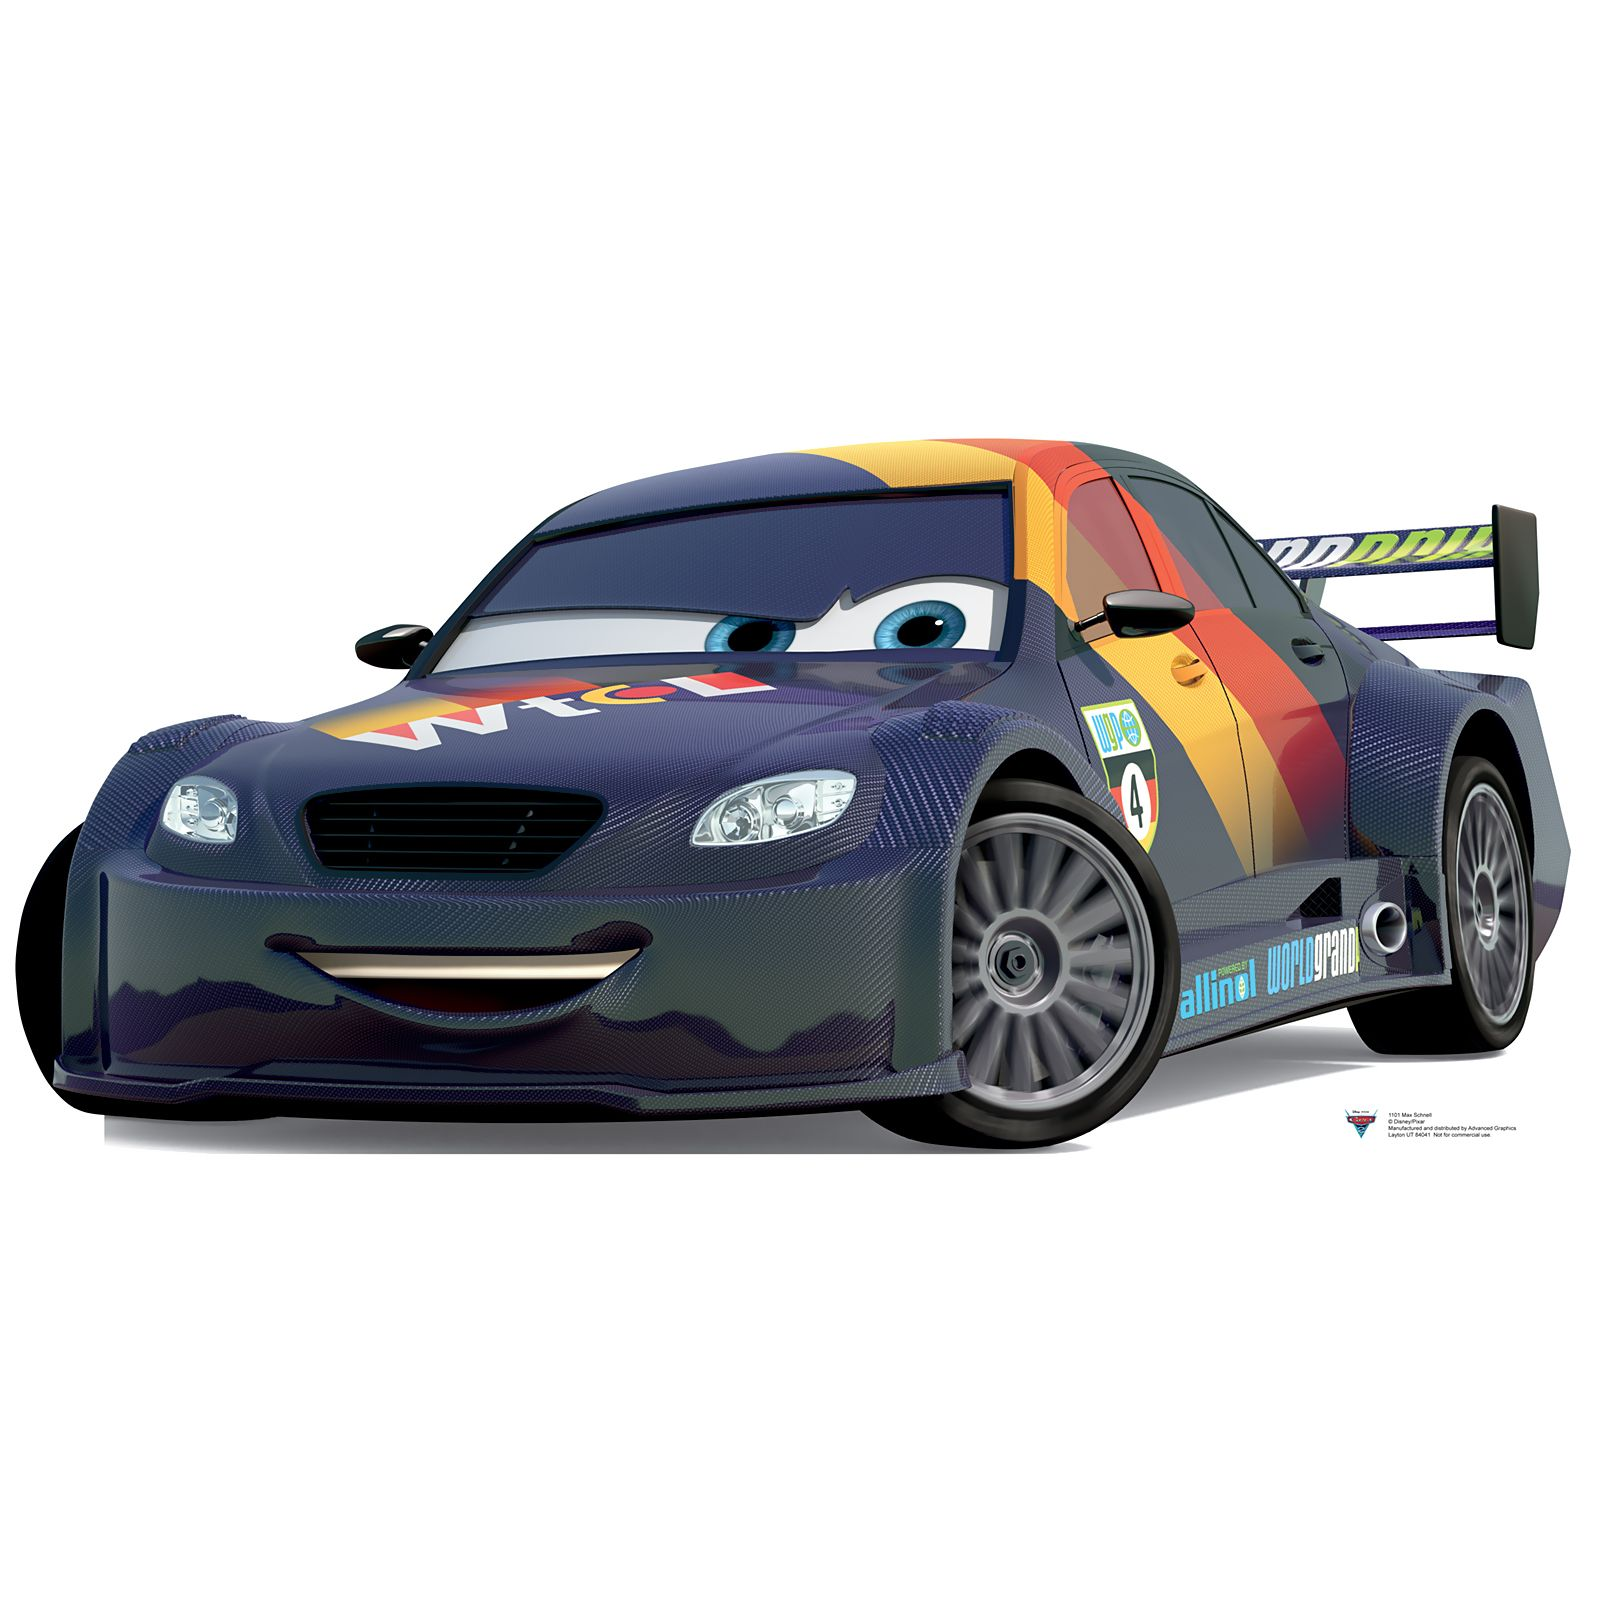 Cars The Movie: Disney's Cars 2 - Max Schnell